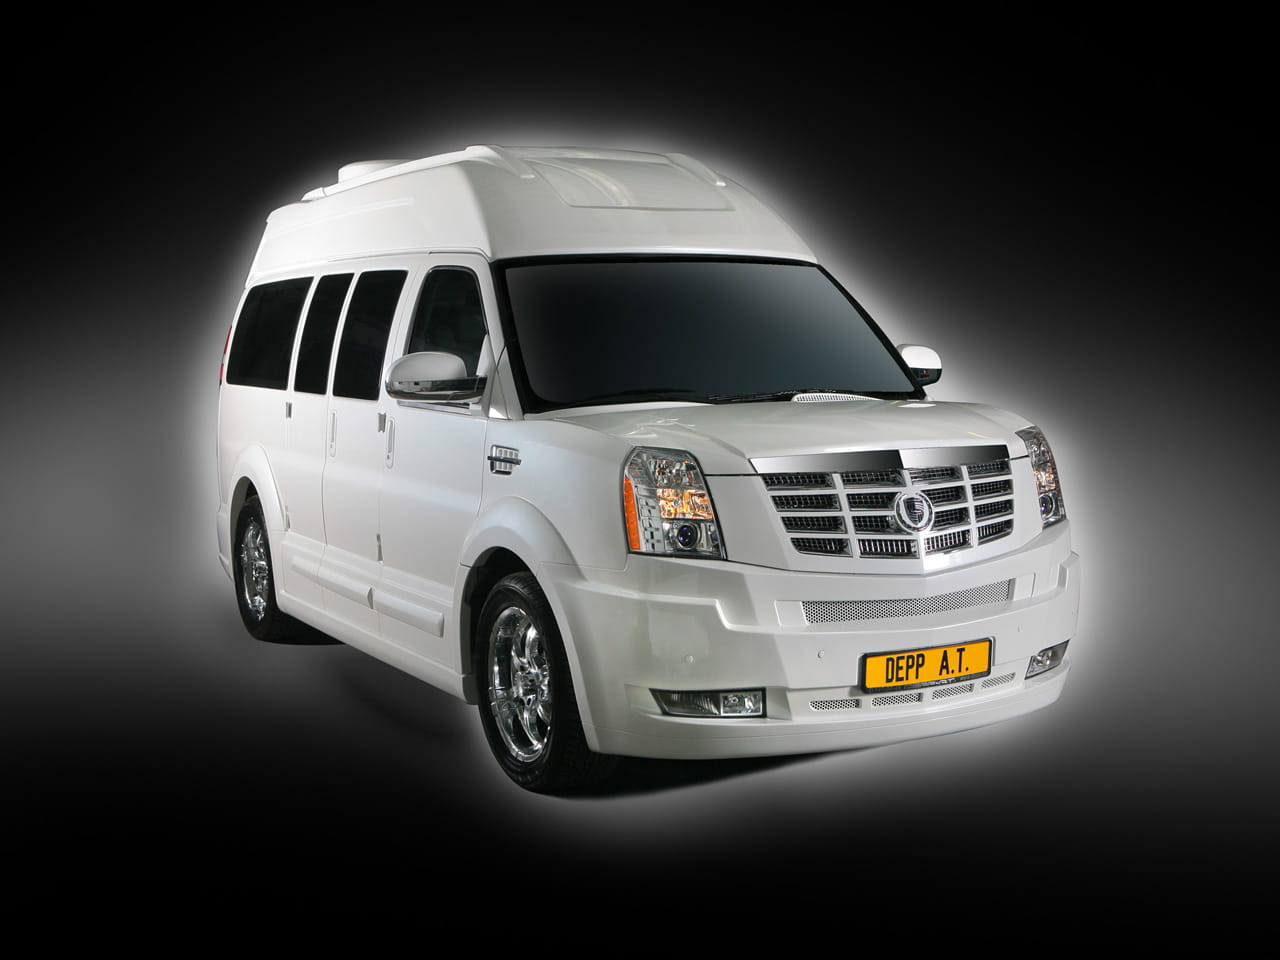 2011-Depp-Auto-Tuning-Chevrolet-Express-Platinum-Front-Angle-1280 ...